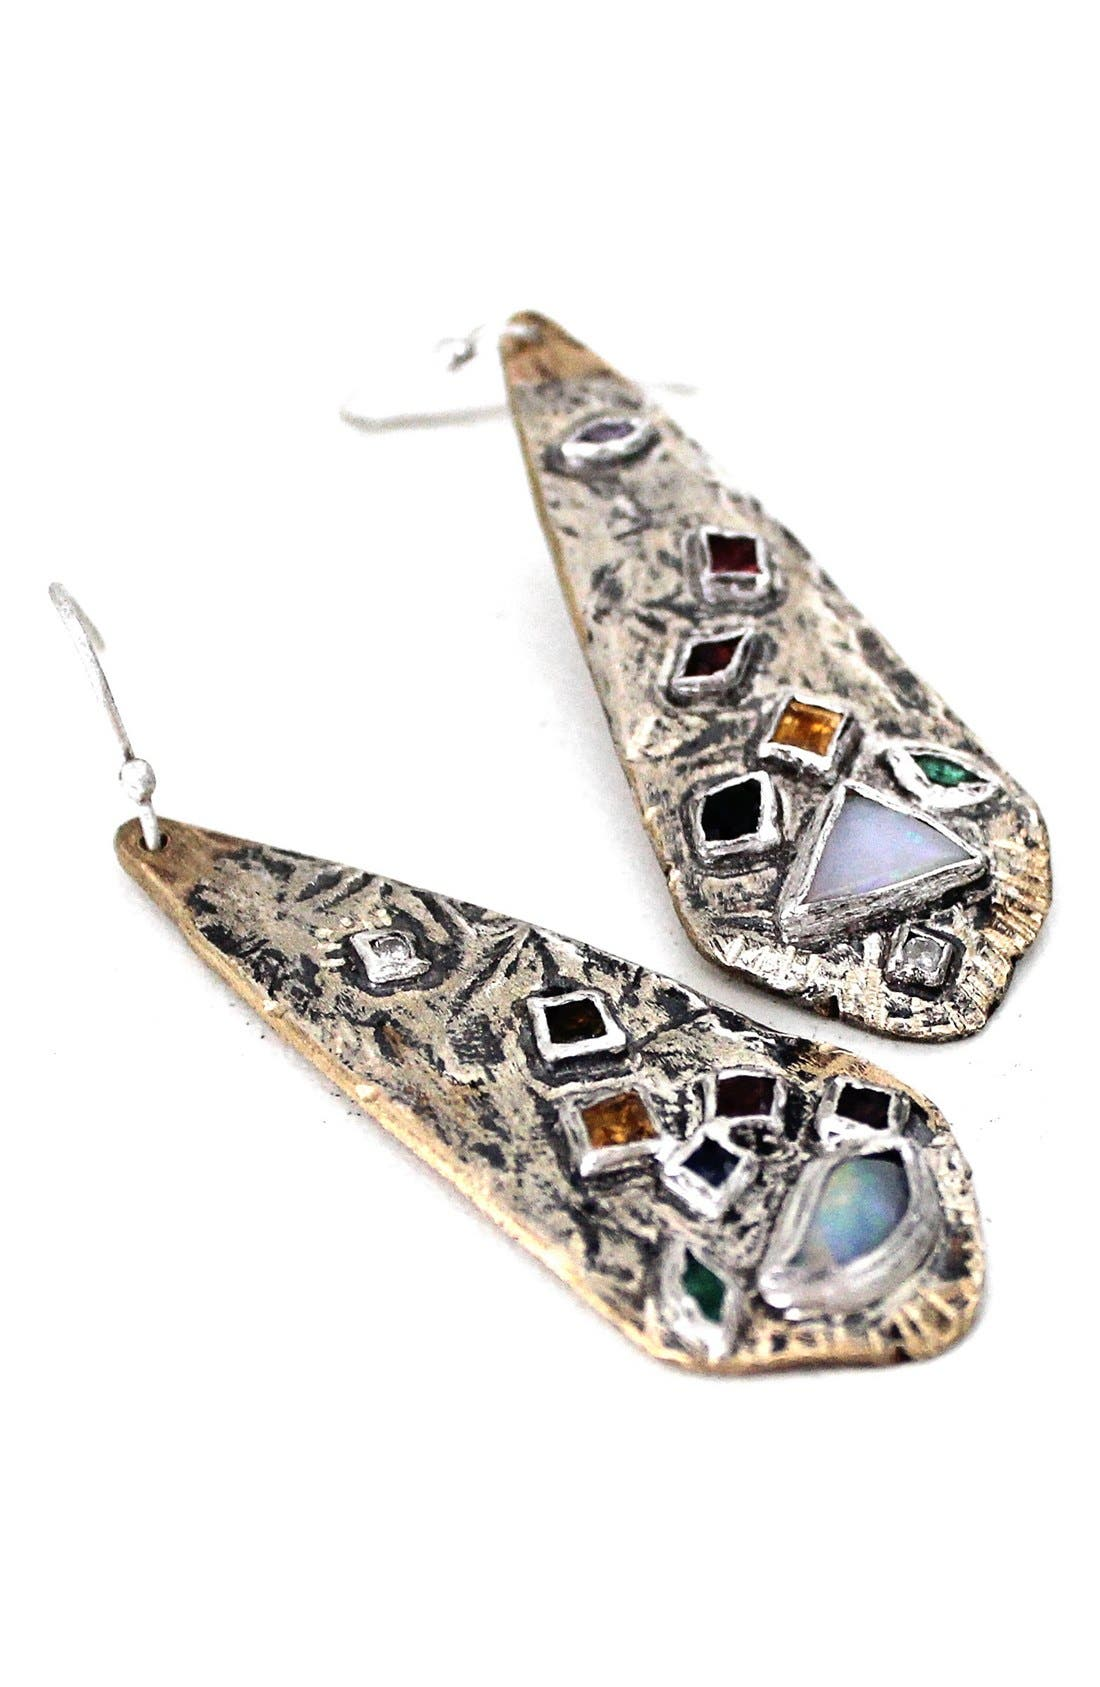 Main Image - Franny E Jewelry Mixed Gem Statement Earrings